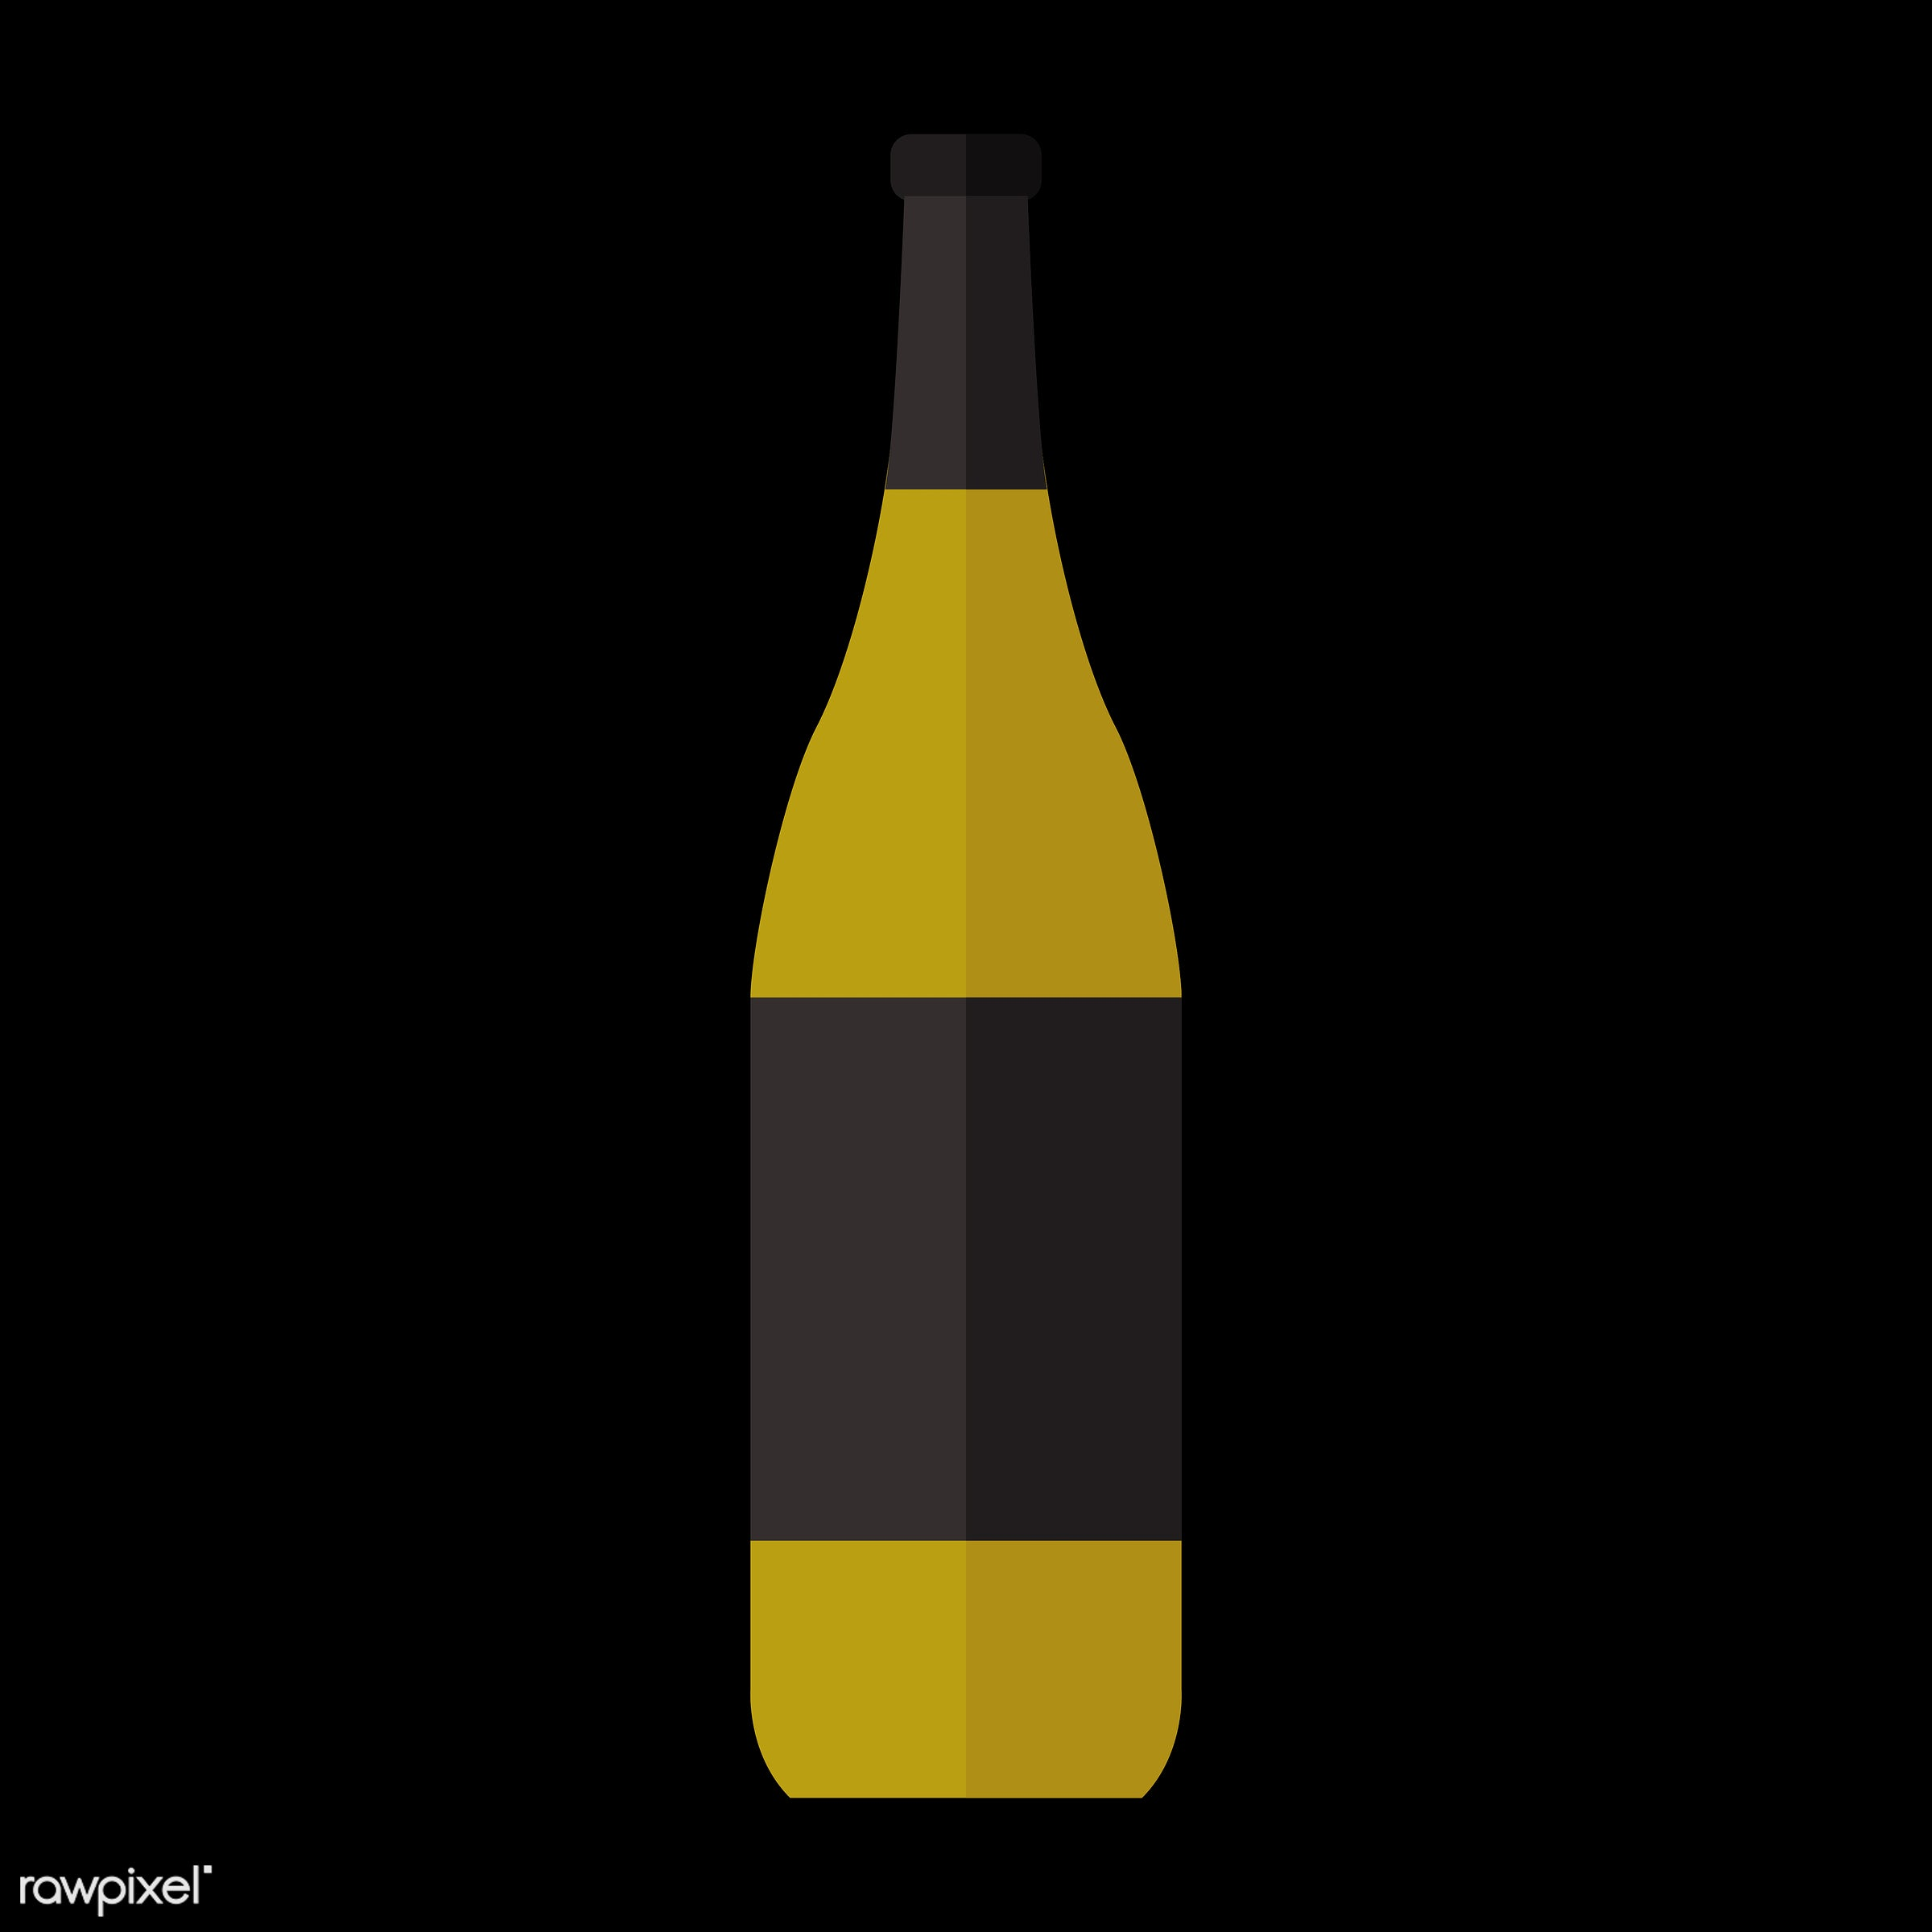 vector, graphic, illustration, icon, symbol, colorful, cute, drink, beverage, water, wine, red wine, white wine, wine bottle